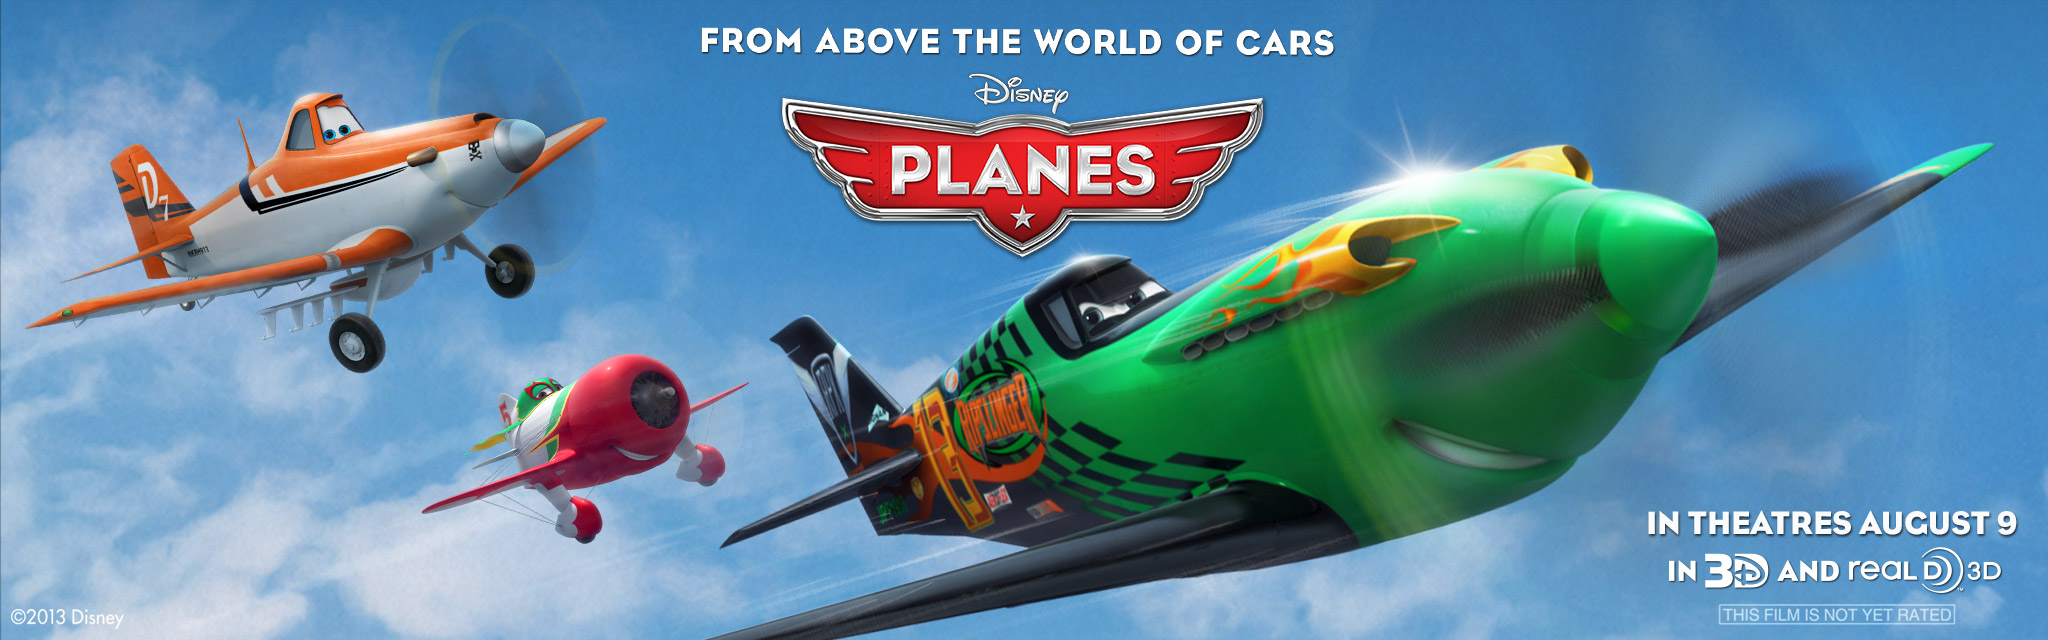 Disney's 'Planes' nosedives on takeoff | MOVIE JUNKIE TO'S ...